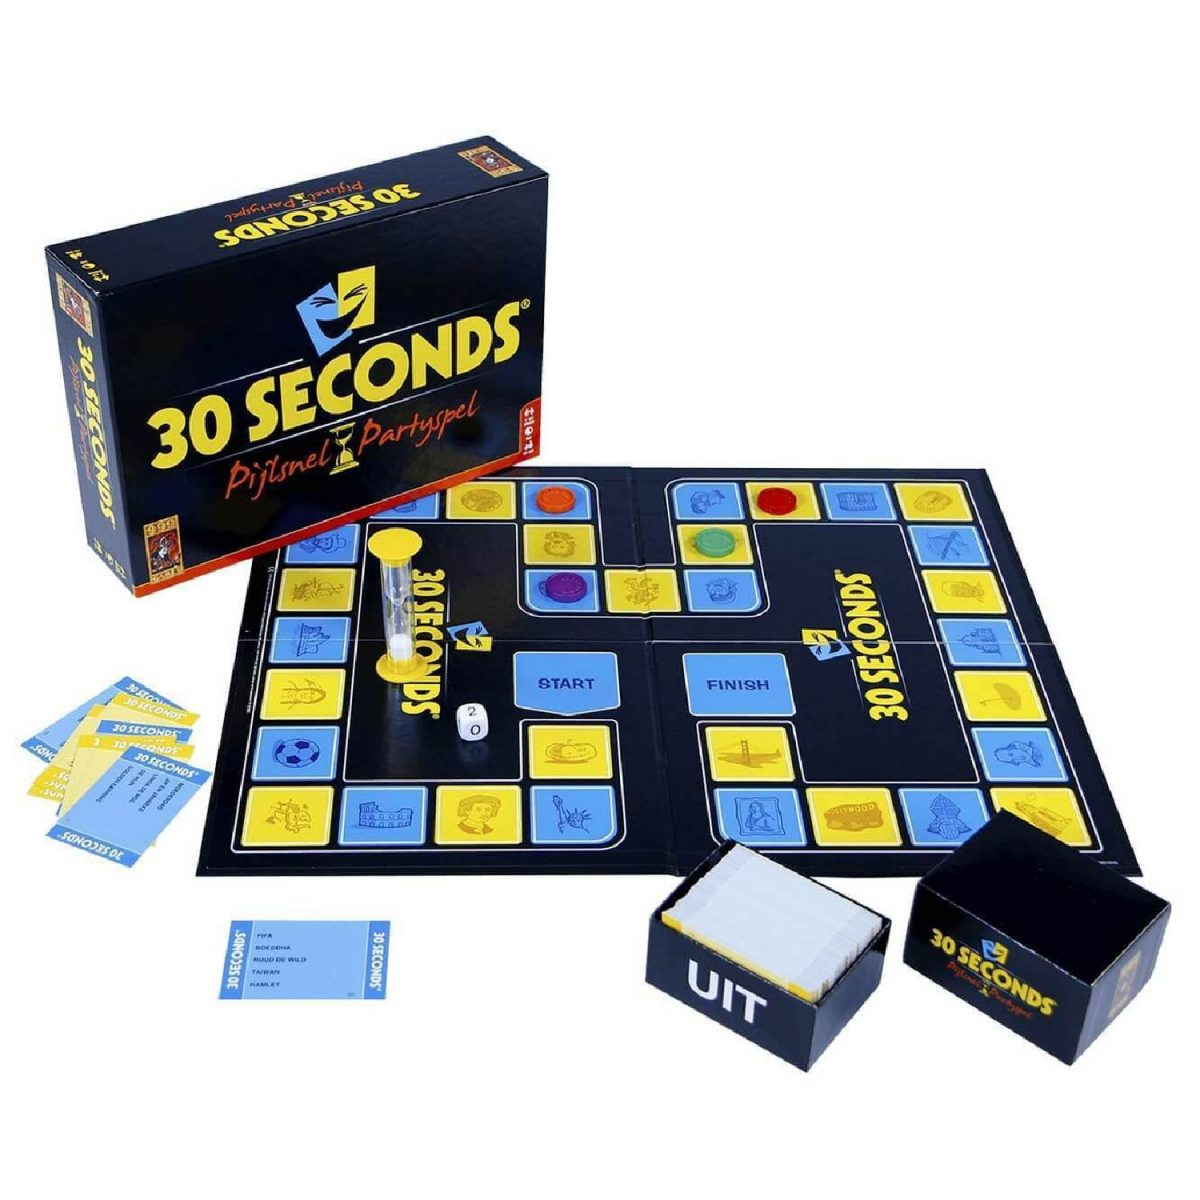 30 Seconds spel